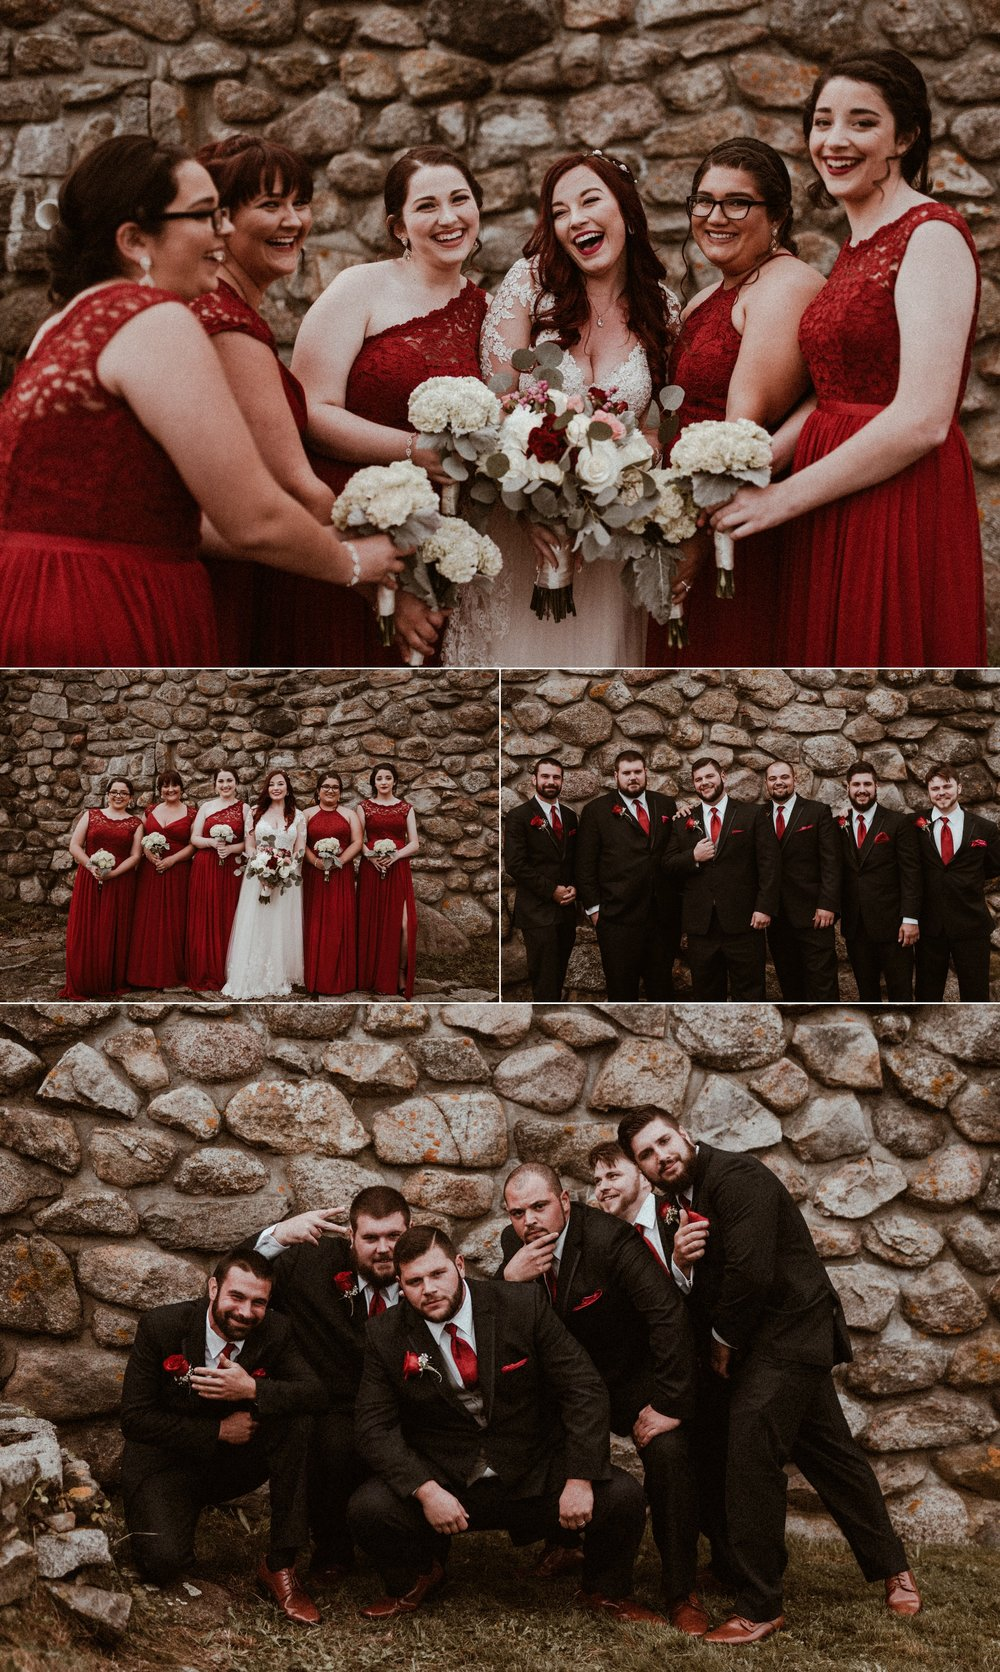 VanessaAlvesPhotography_AtlantaWeddingPhotographers_RockportMAWedding_BostonWeddingPhotographers_CarnivalThemedWedding_111.jpg